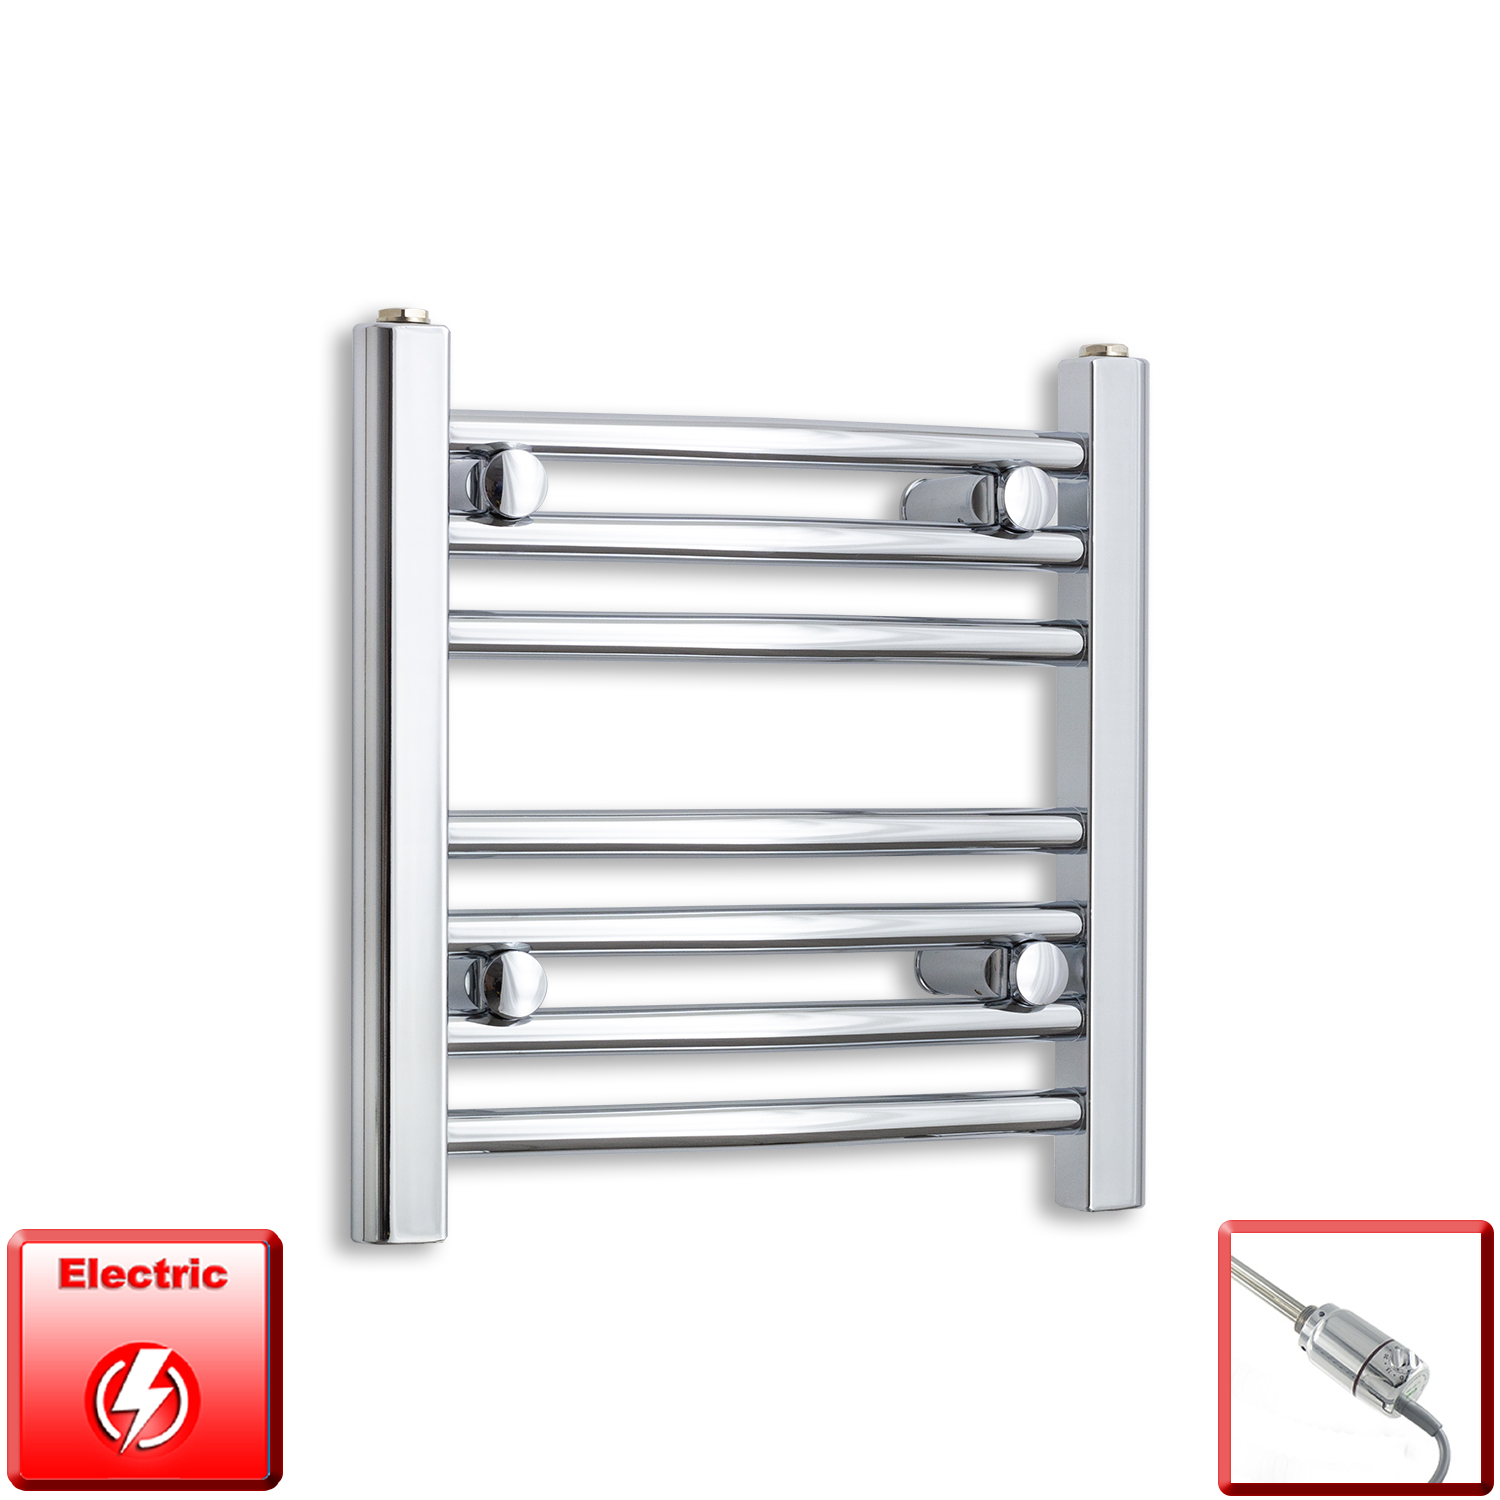 450mm Wide 400mm High Pre-Filled Chrome Electric Towel Rail Radiator With Thermostatic GT Element